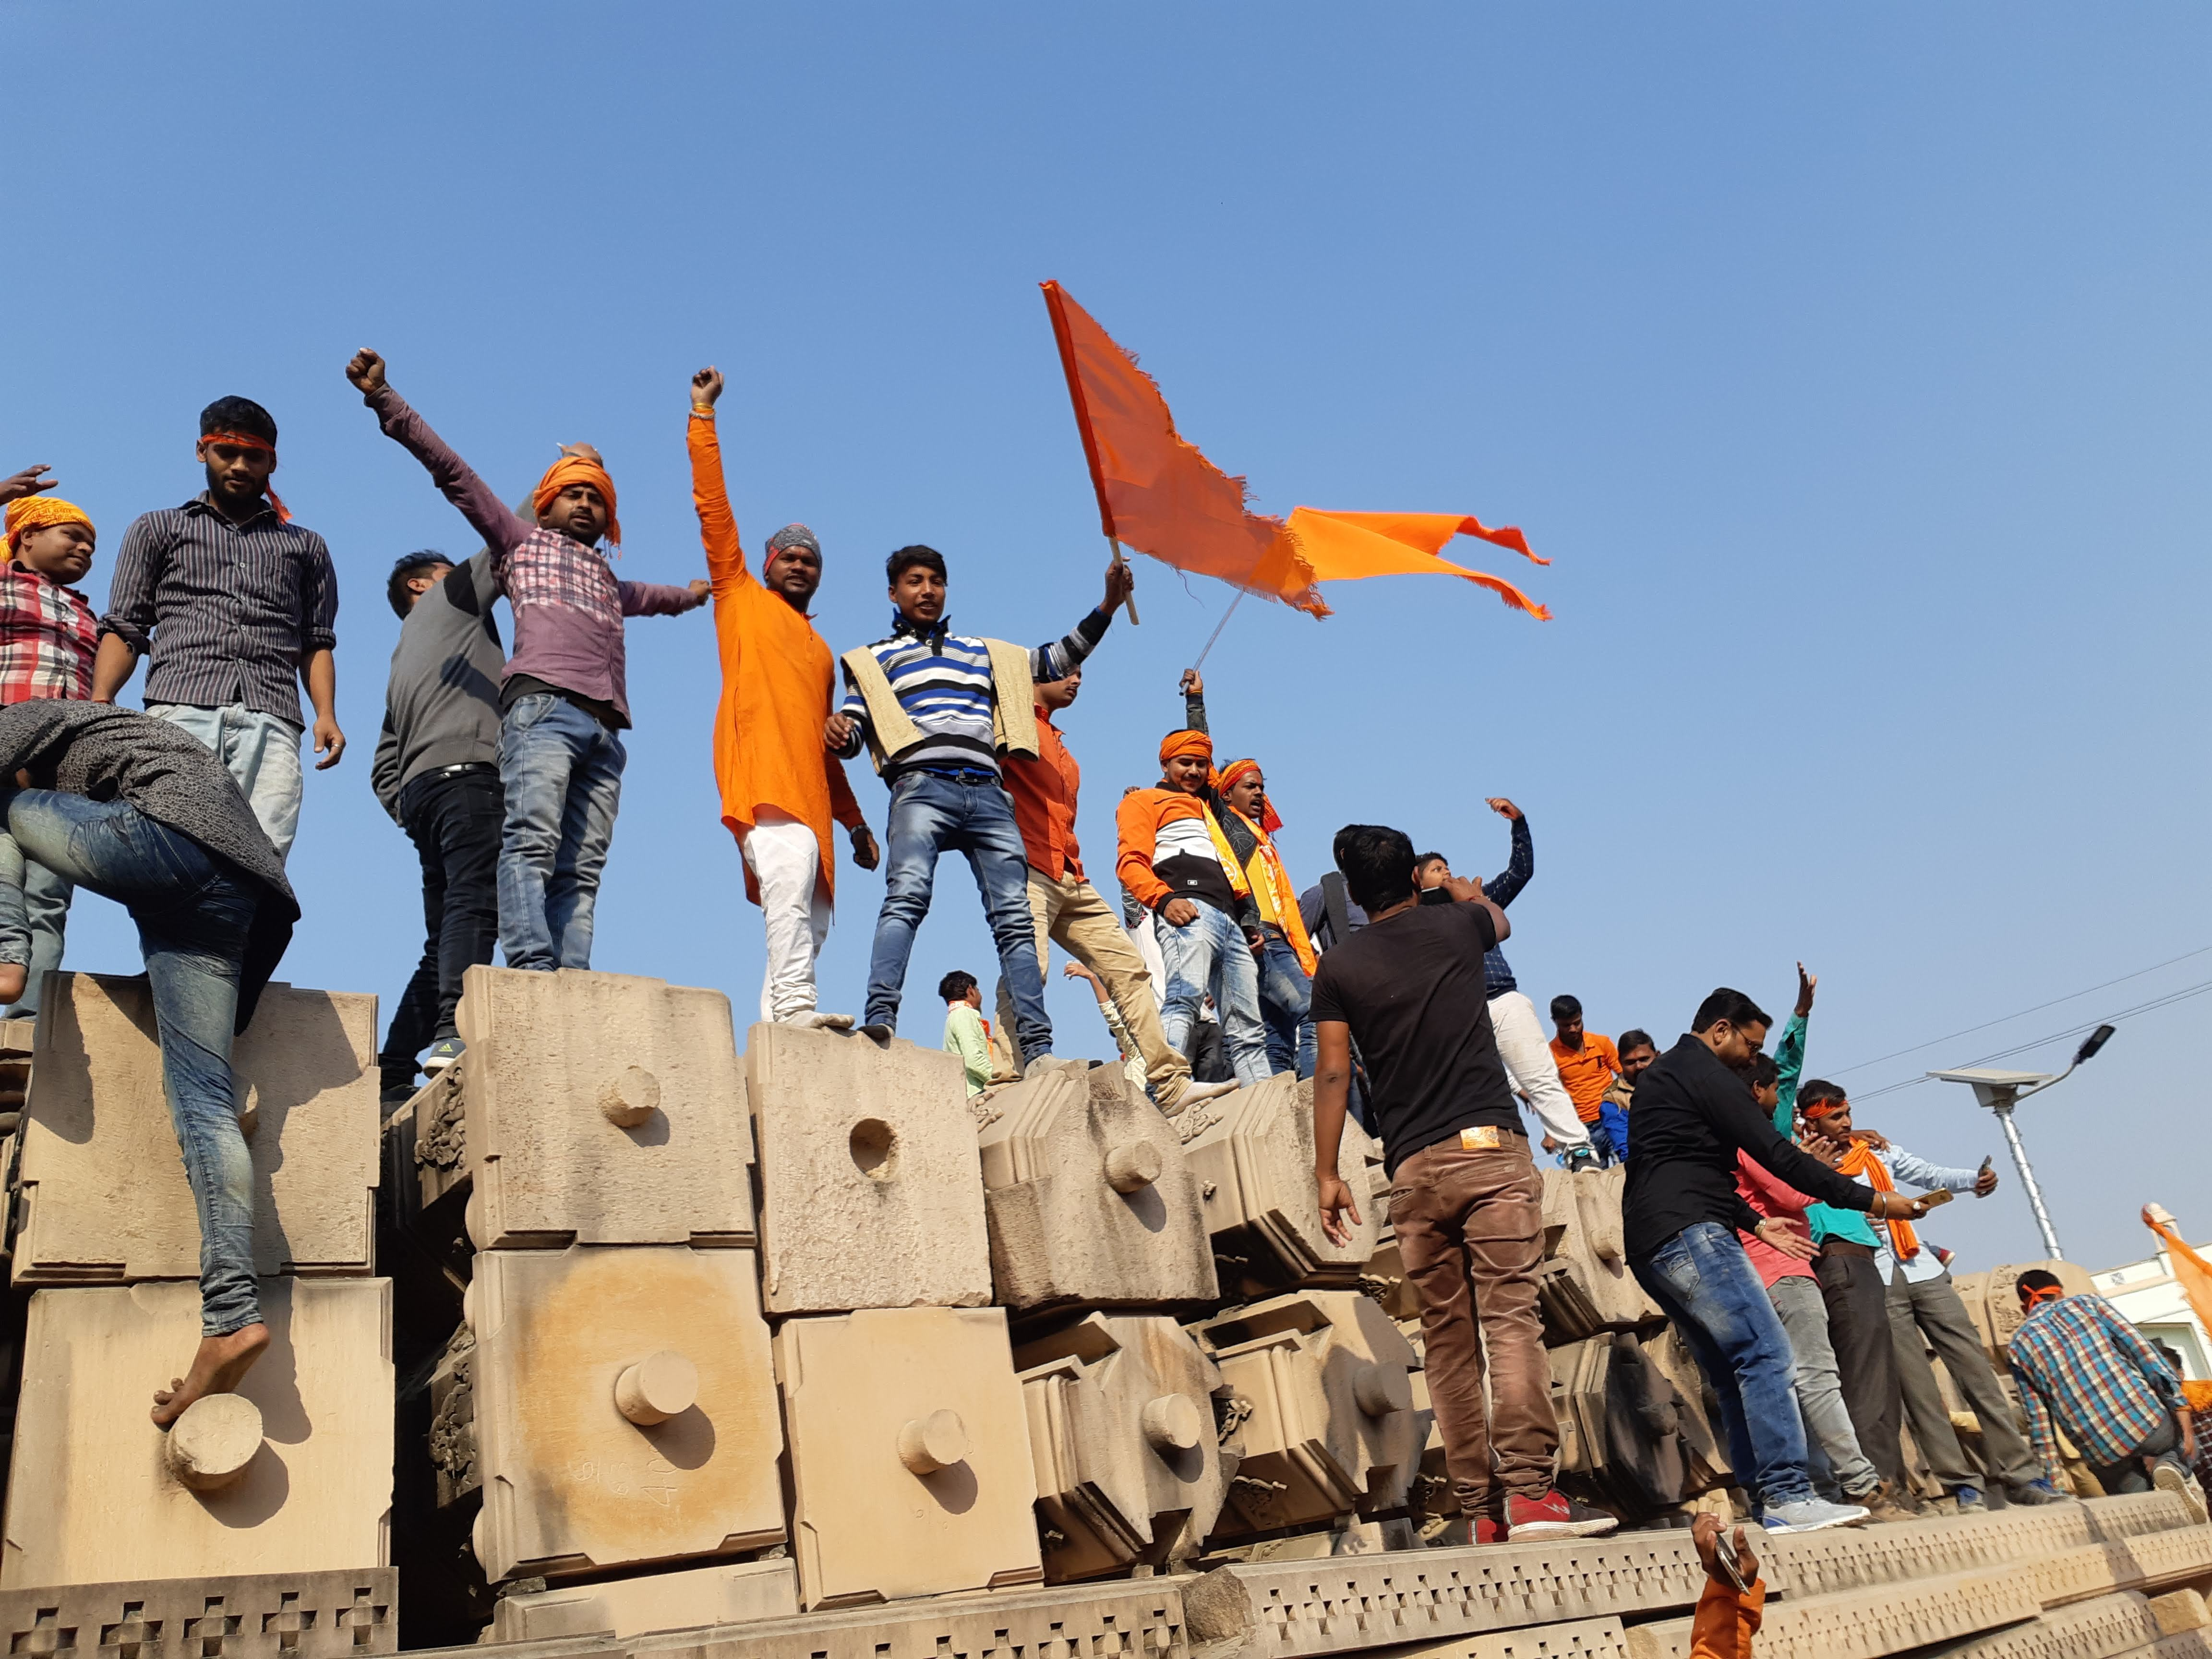 Ram%20temple%20belivers%20standing%20at%20the%20stones%20with%20saffron%20flag%20and%20chanting%20religious%20slogans%20in%20Ayodhya.%20Photo%20by%20Saurabh%20Sharm.jpg